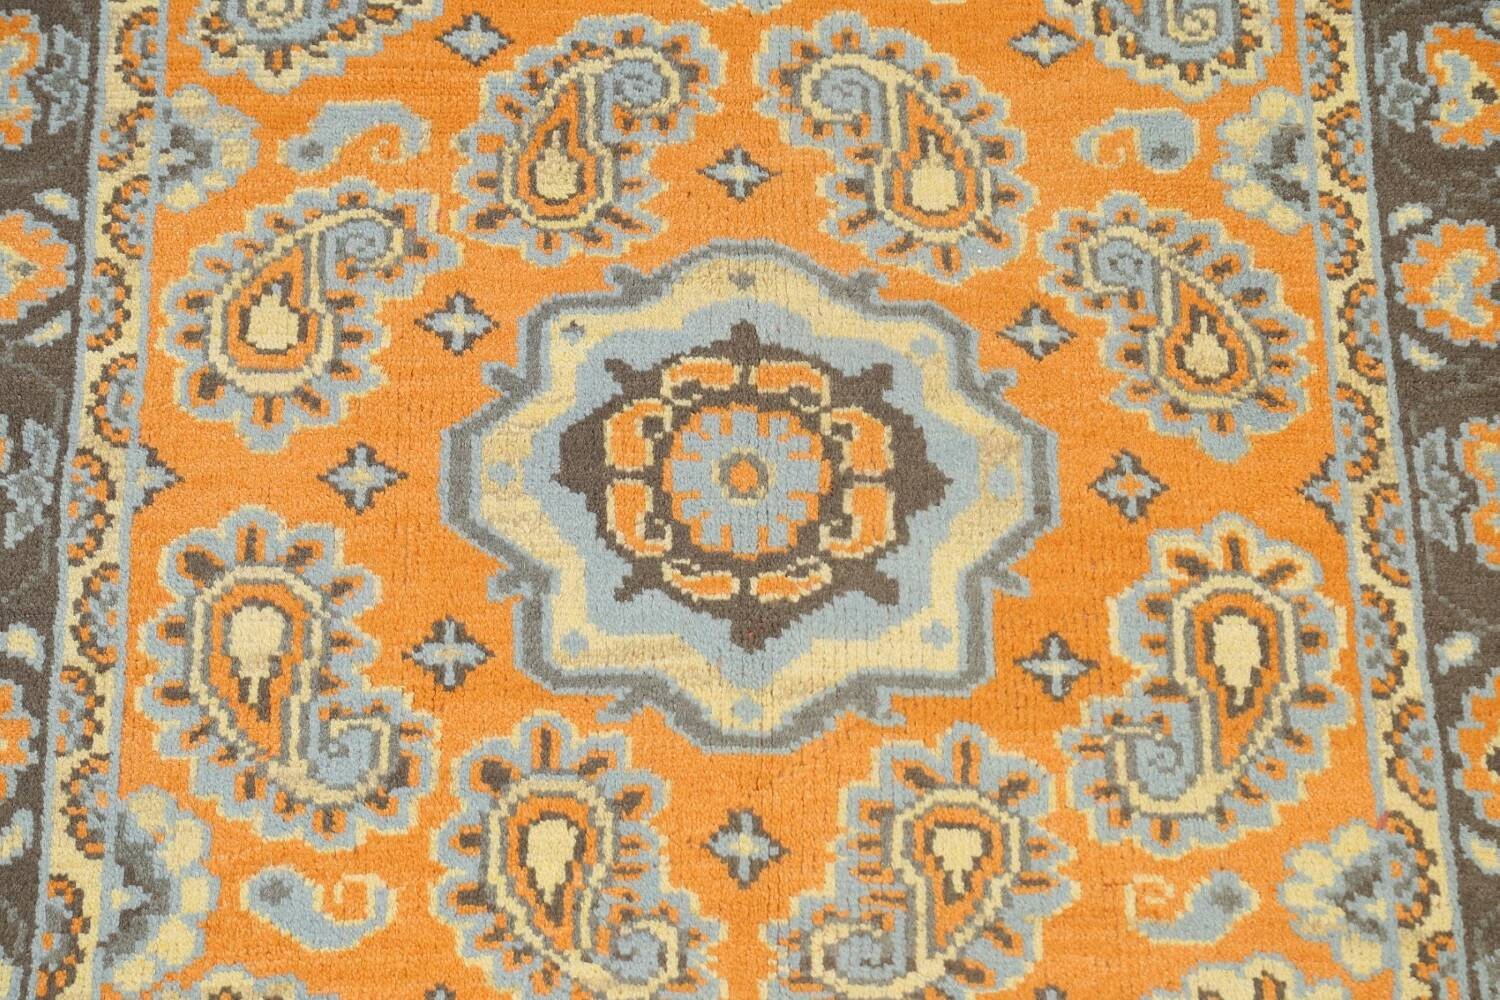 Paisley Abstract Oriental Area Rug 5x8 image 4